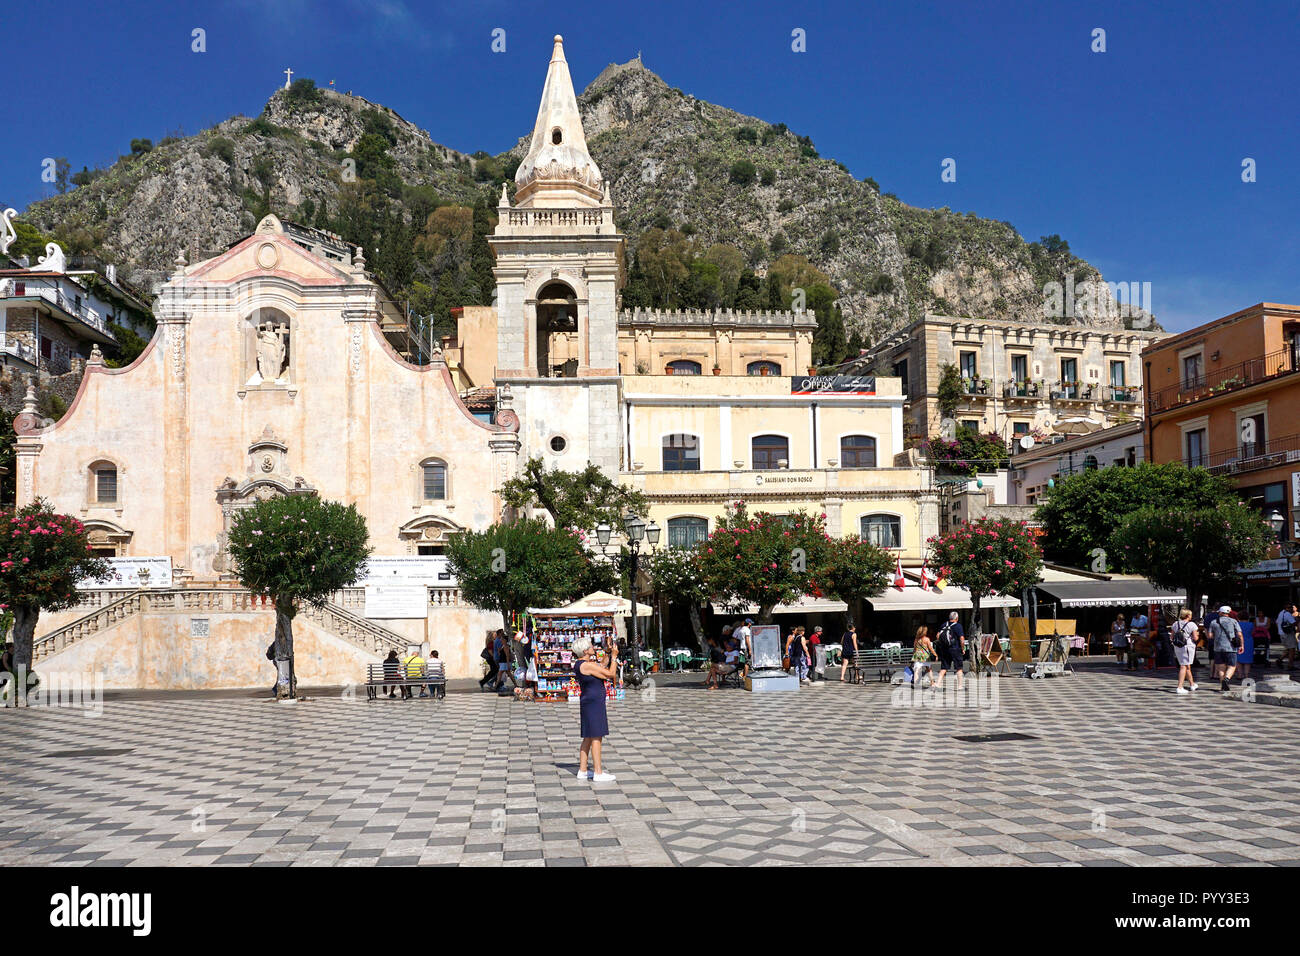 The Church of San Giuseppe in Piazza IX Aprile, Old Town of Taormina, Sicily, Italy - Stock Image